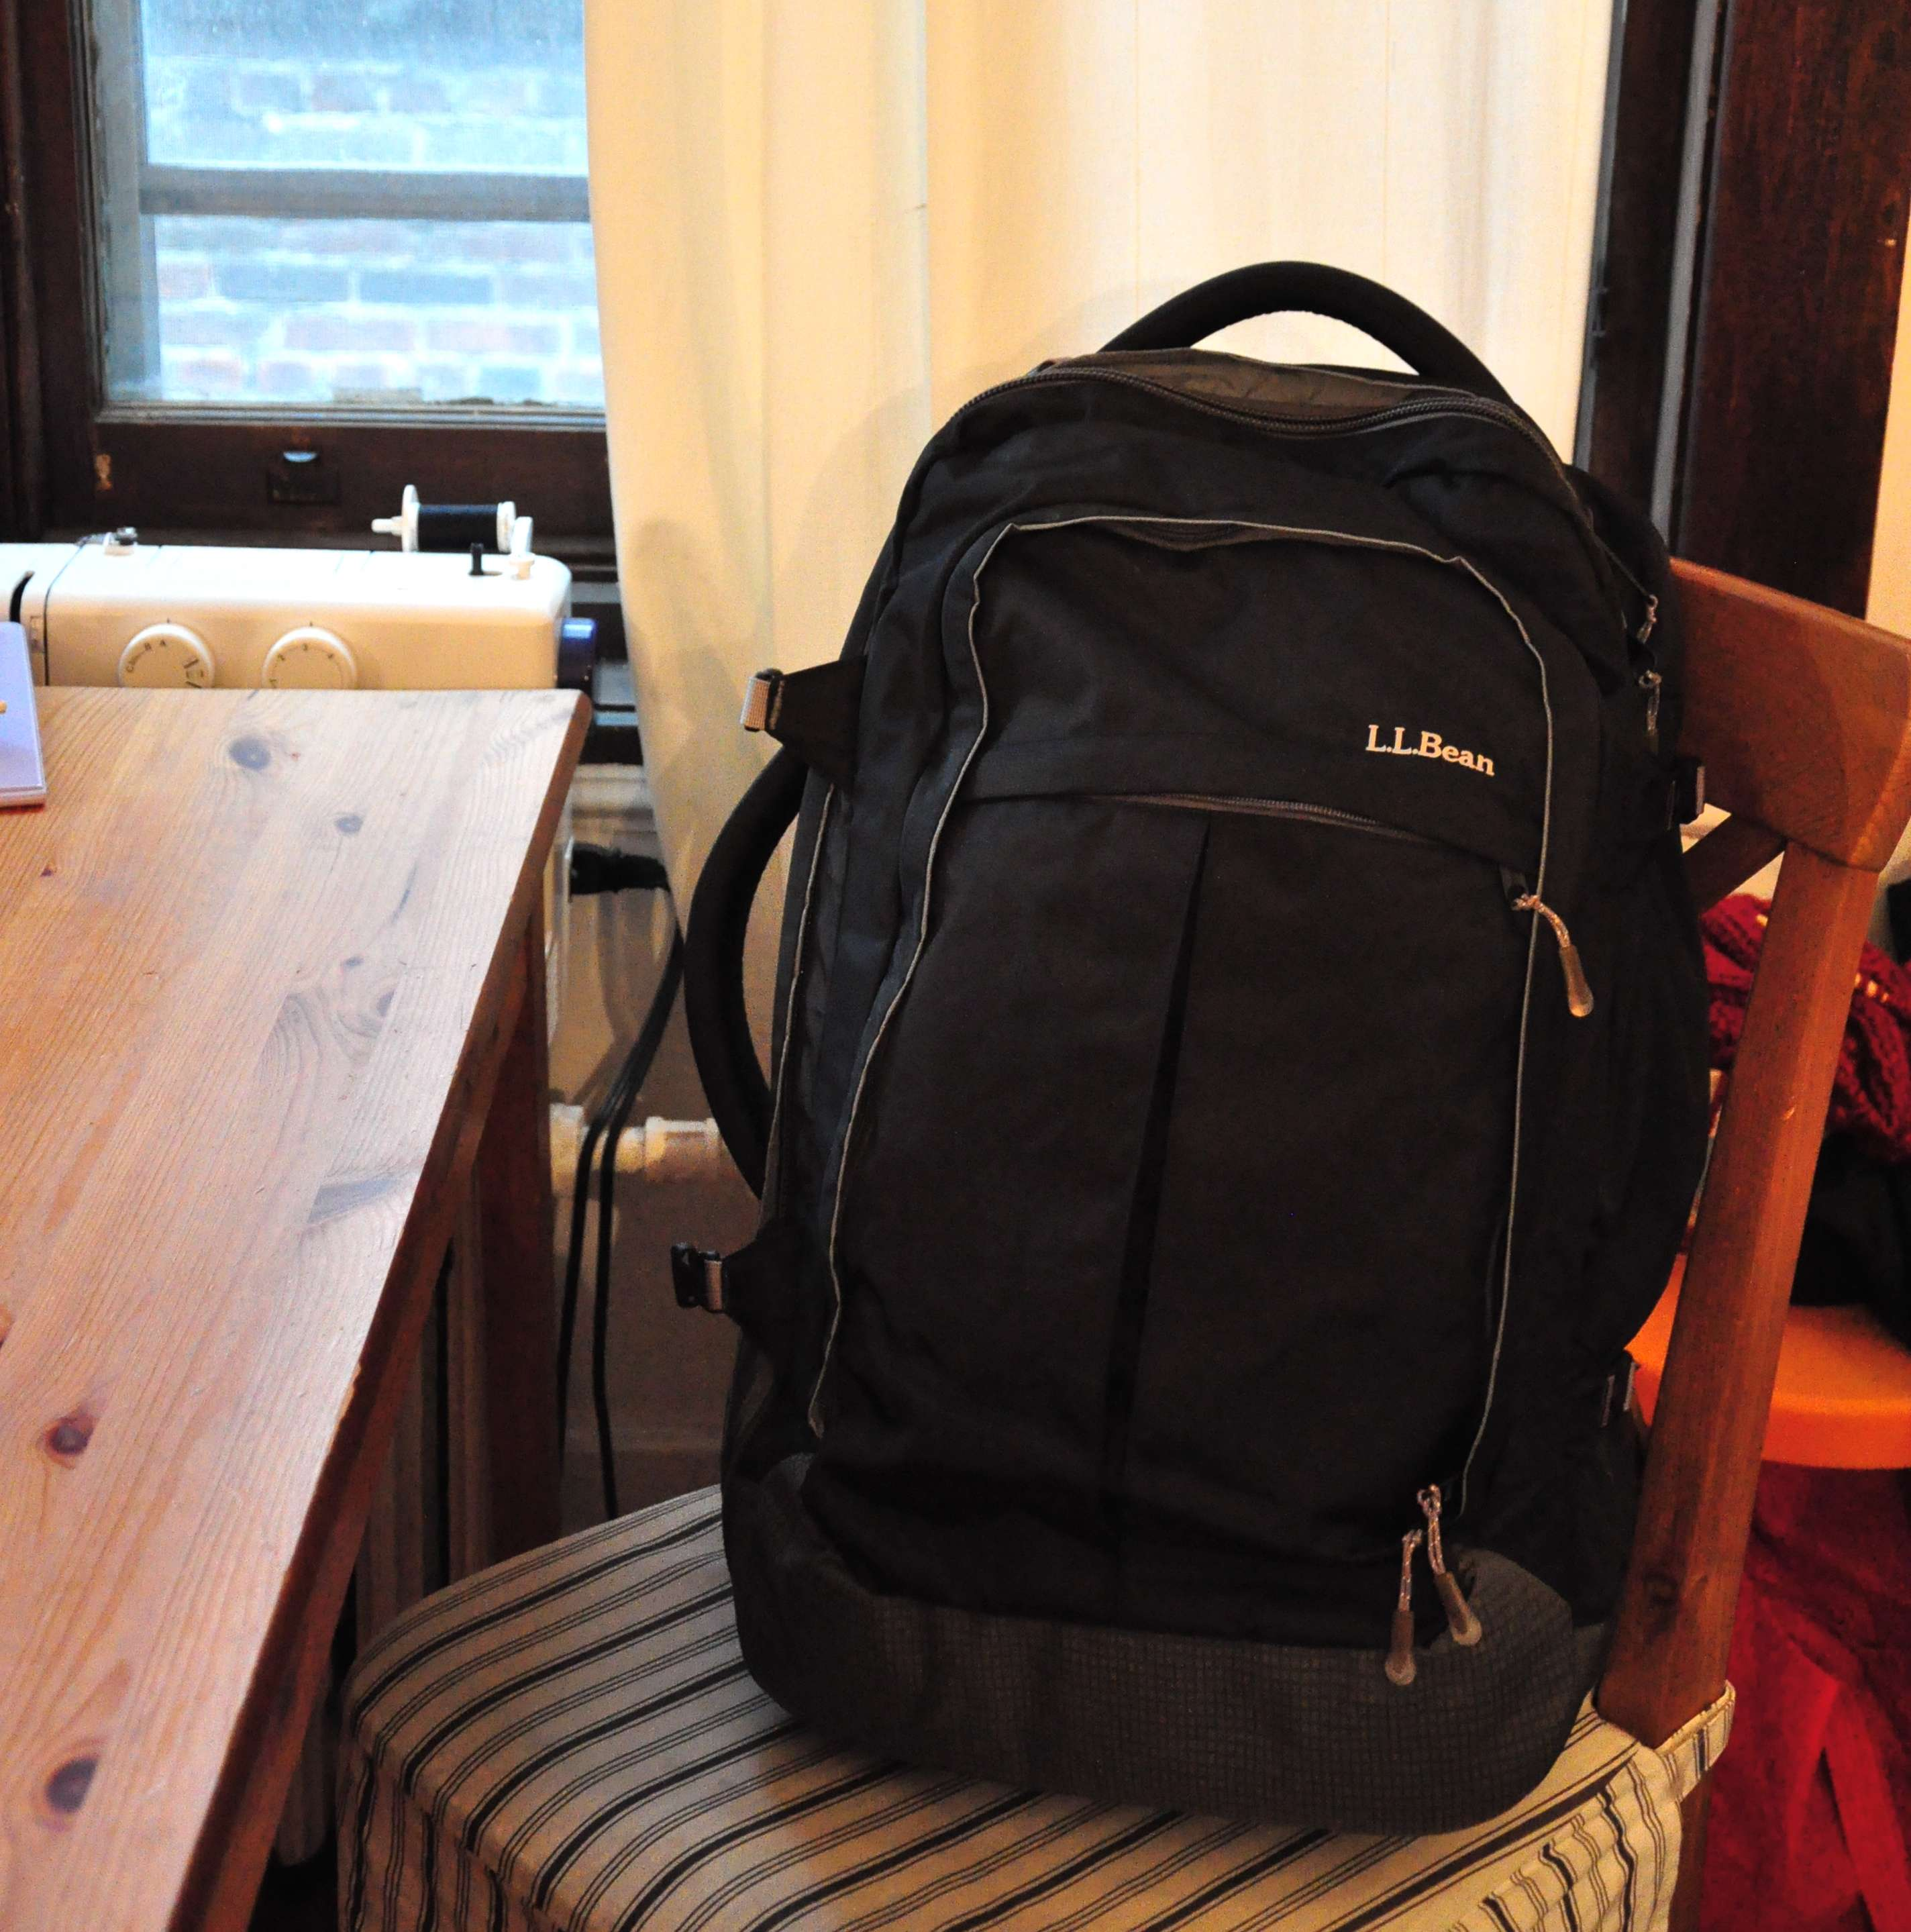 Best Travel Carry On Backpack - Life In Limbo